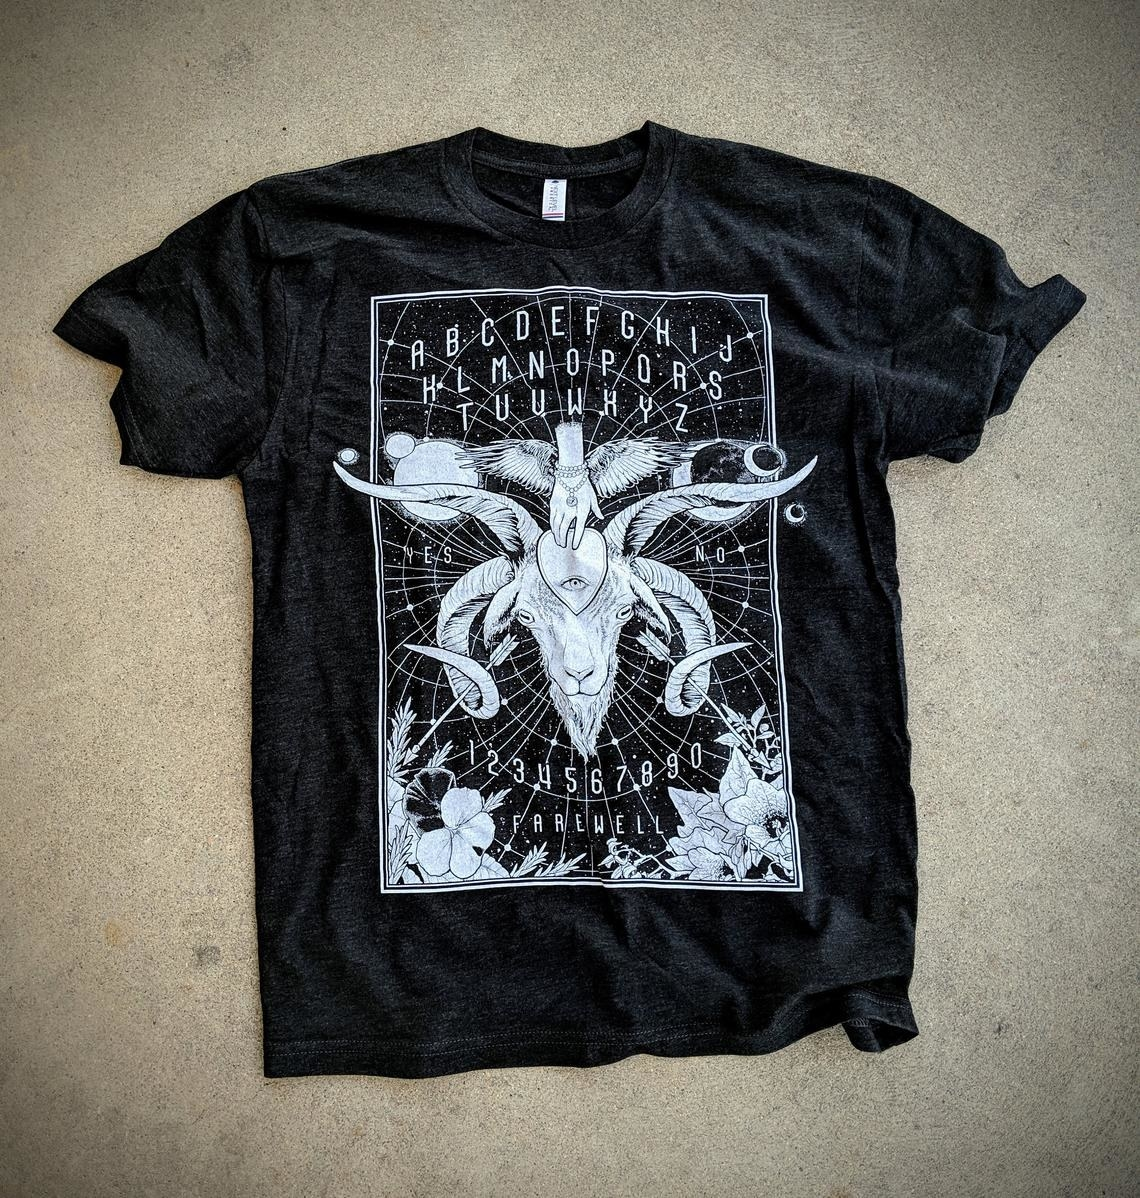 A black graphic tee with a mythical looking ram's head, floral details in each corner, an astrological starry background, a third-eye planchette, and the traditional letters, numbers, and verbiage from a spirit board